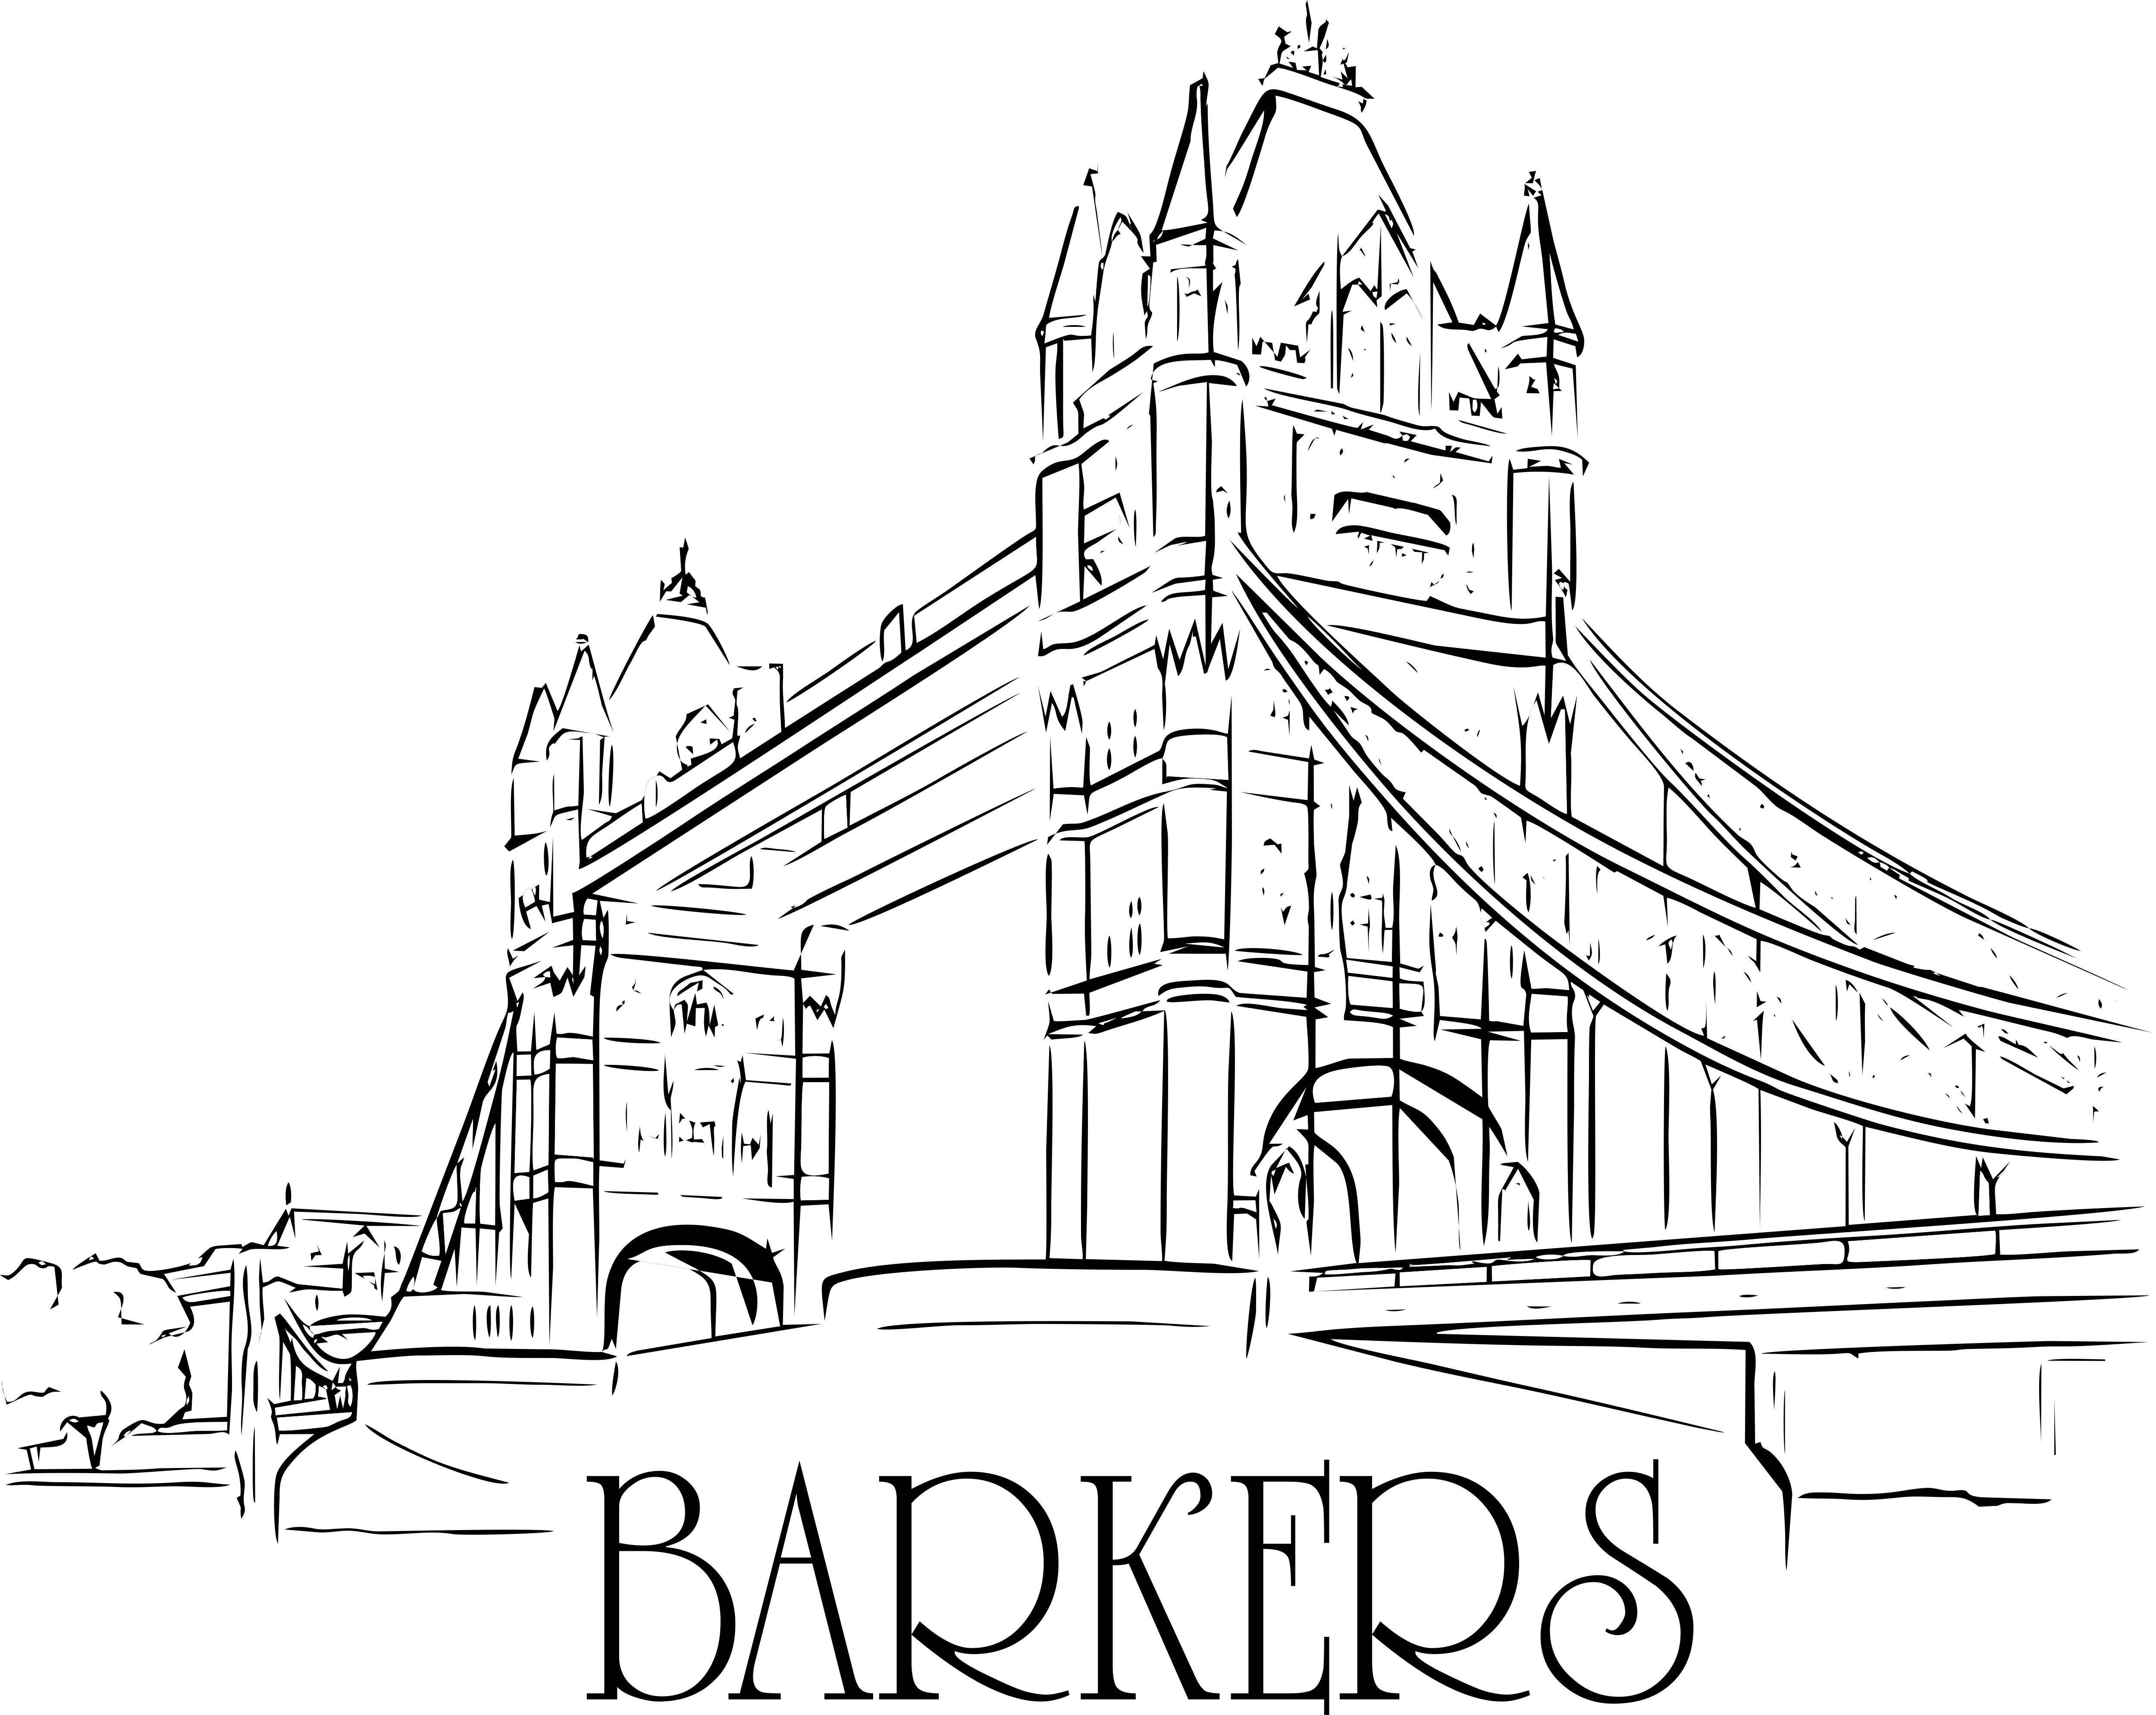 Barkers